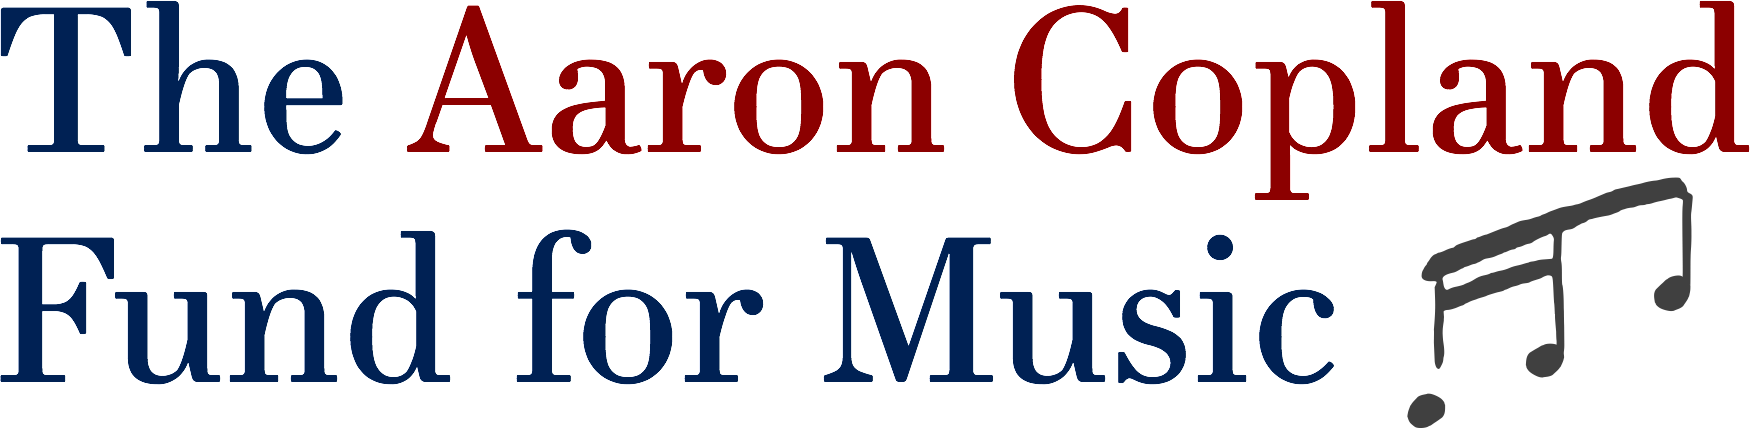 The logo for The Aaron Copland Fund for Music